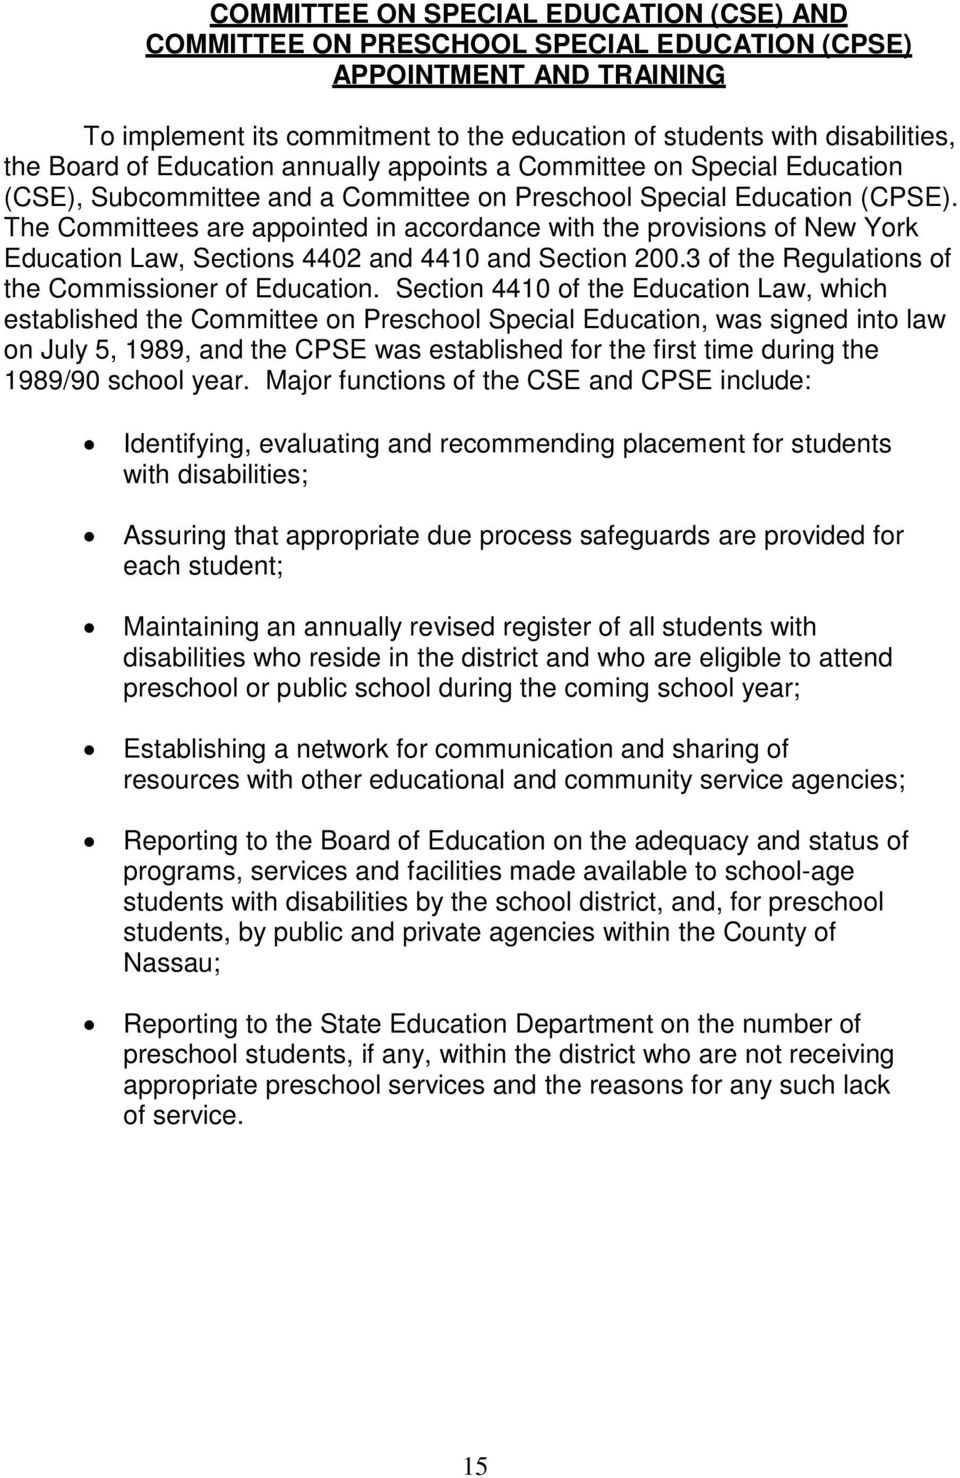 The Committees are appointed in accordance with the provisions of New York Education Law, Sections 4402 and 4410 and Section 200.3 of the Regulations of the Commissioner of Education.